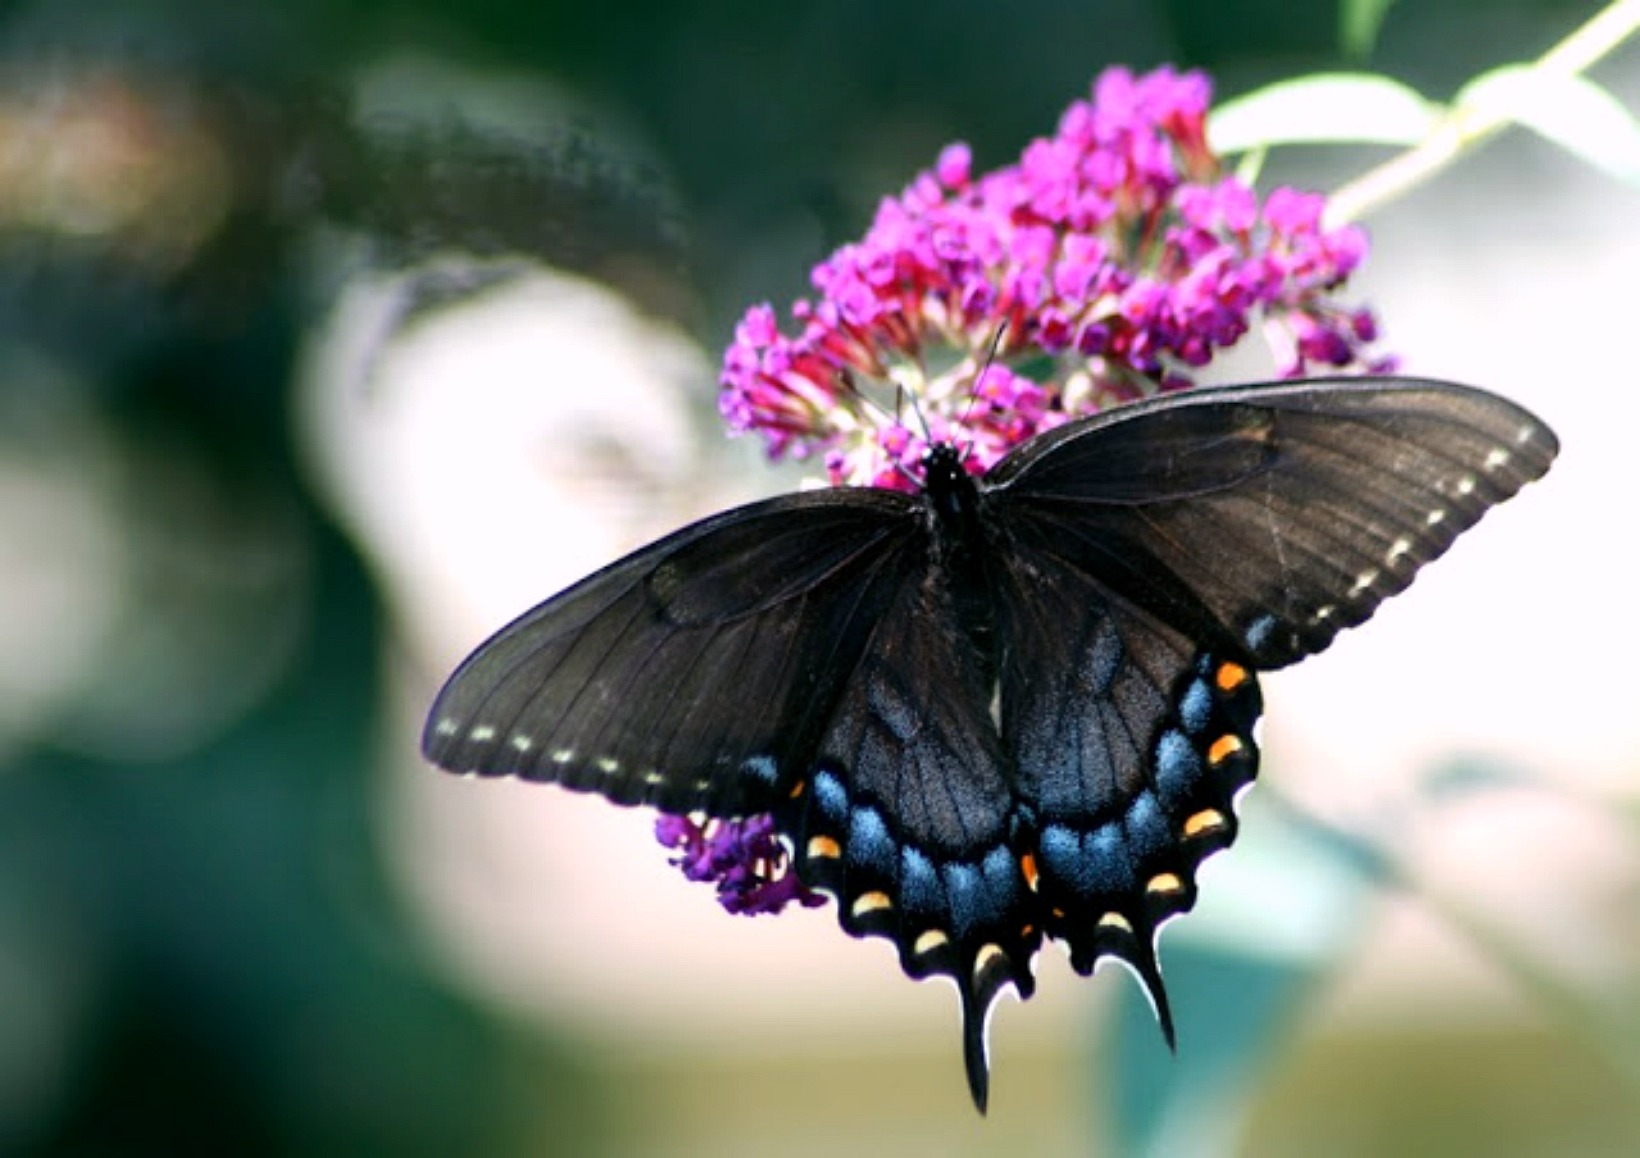 Black butterfly symbolism images symbol and sign ideas black butterfly symbolism choice image symbol and sign ideas symbolism of black butterfly best image and biocorpaavc